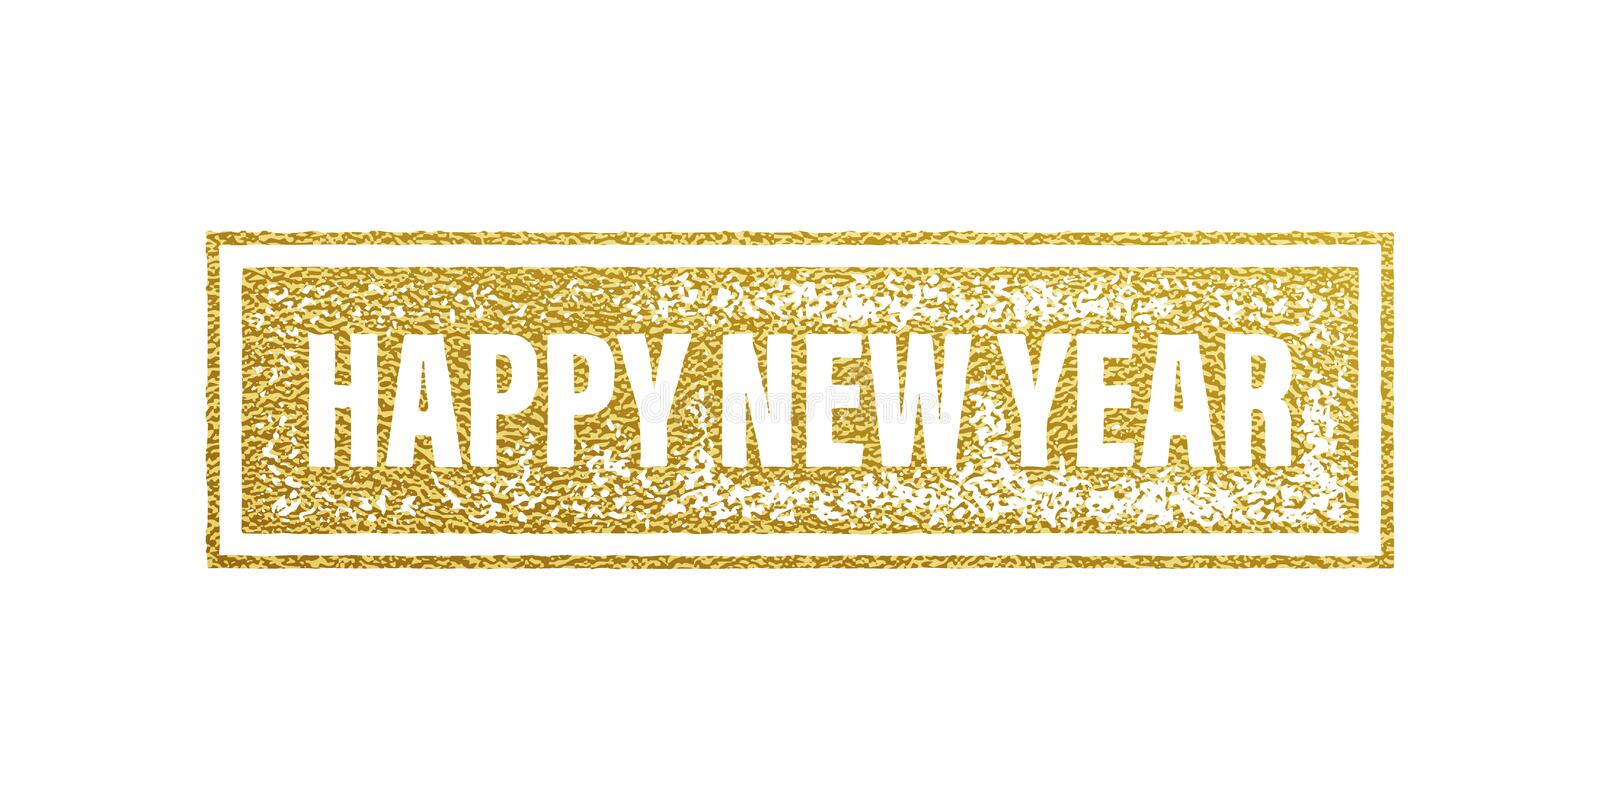 New Year 2017 gold foil textured banner. stock illustration